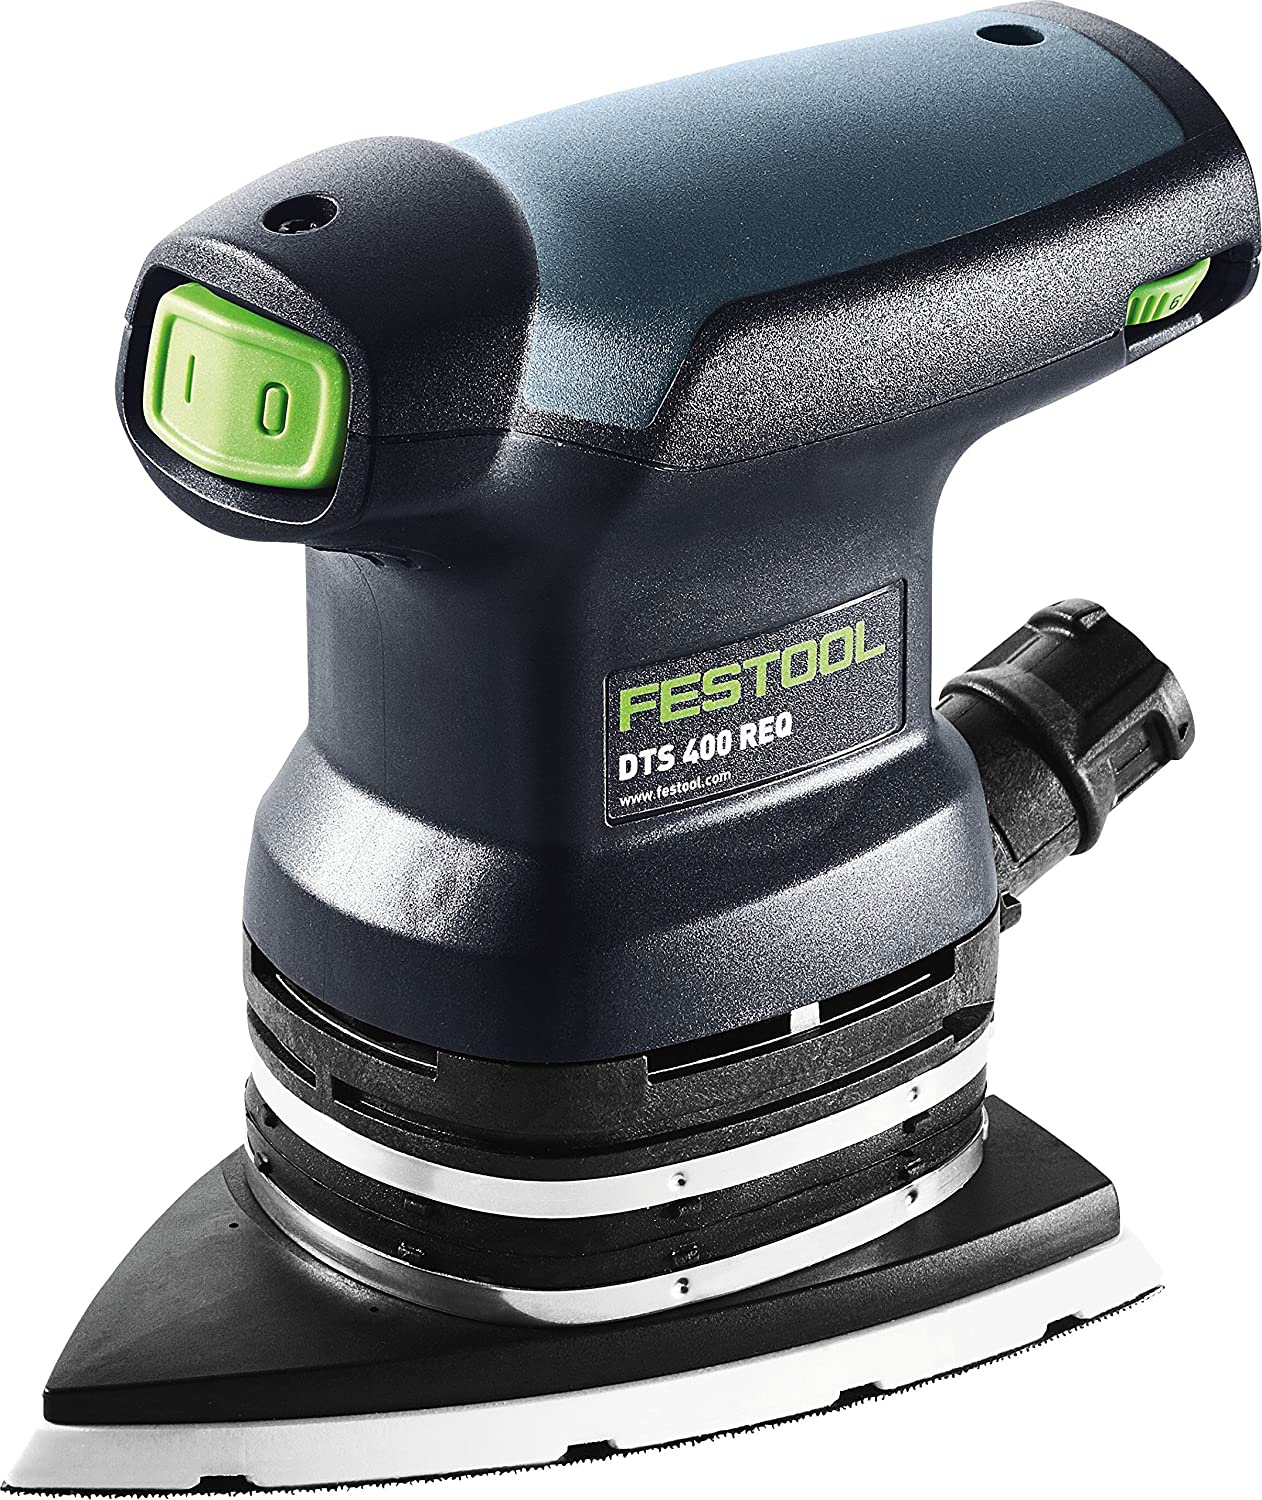 Festool 201228 featured image